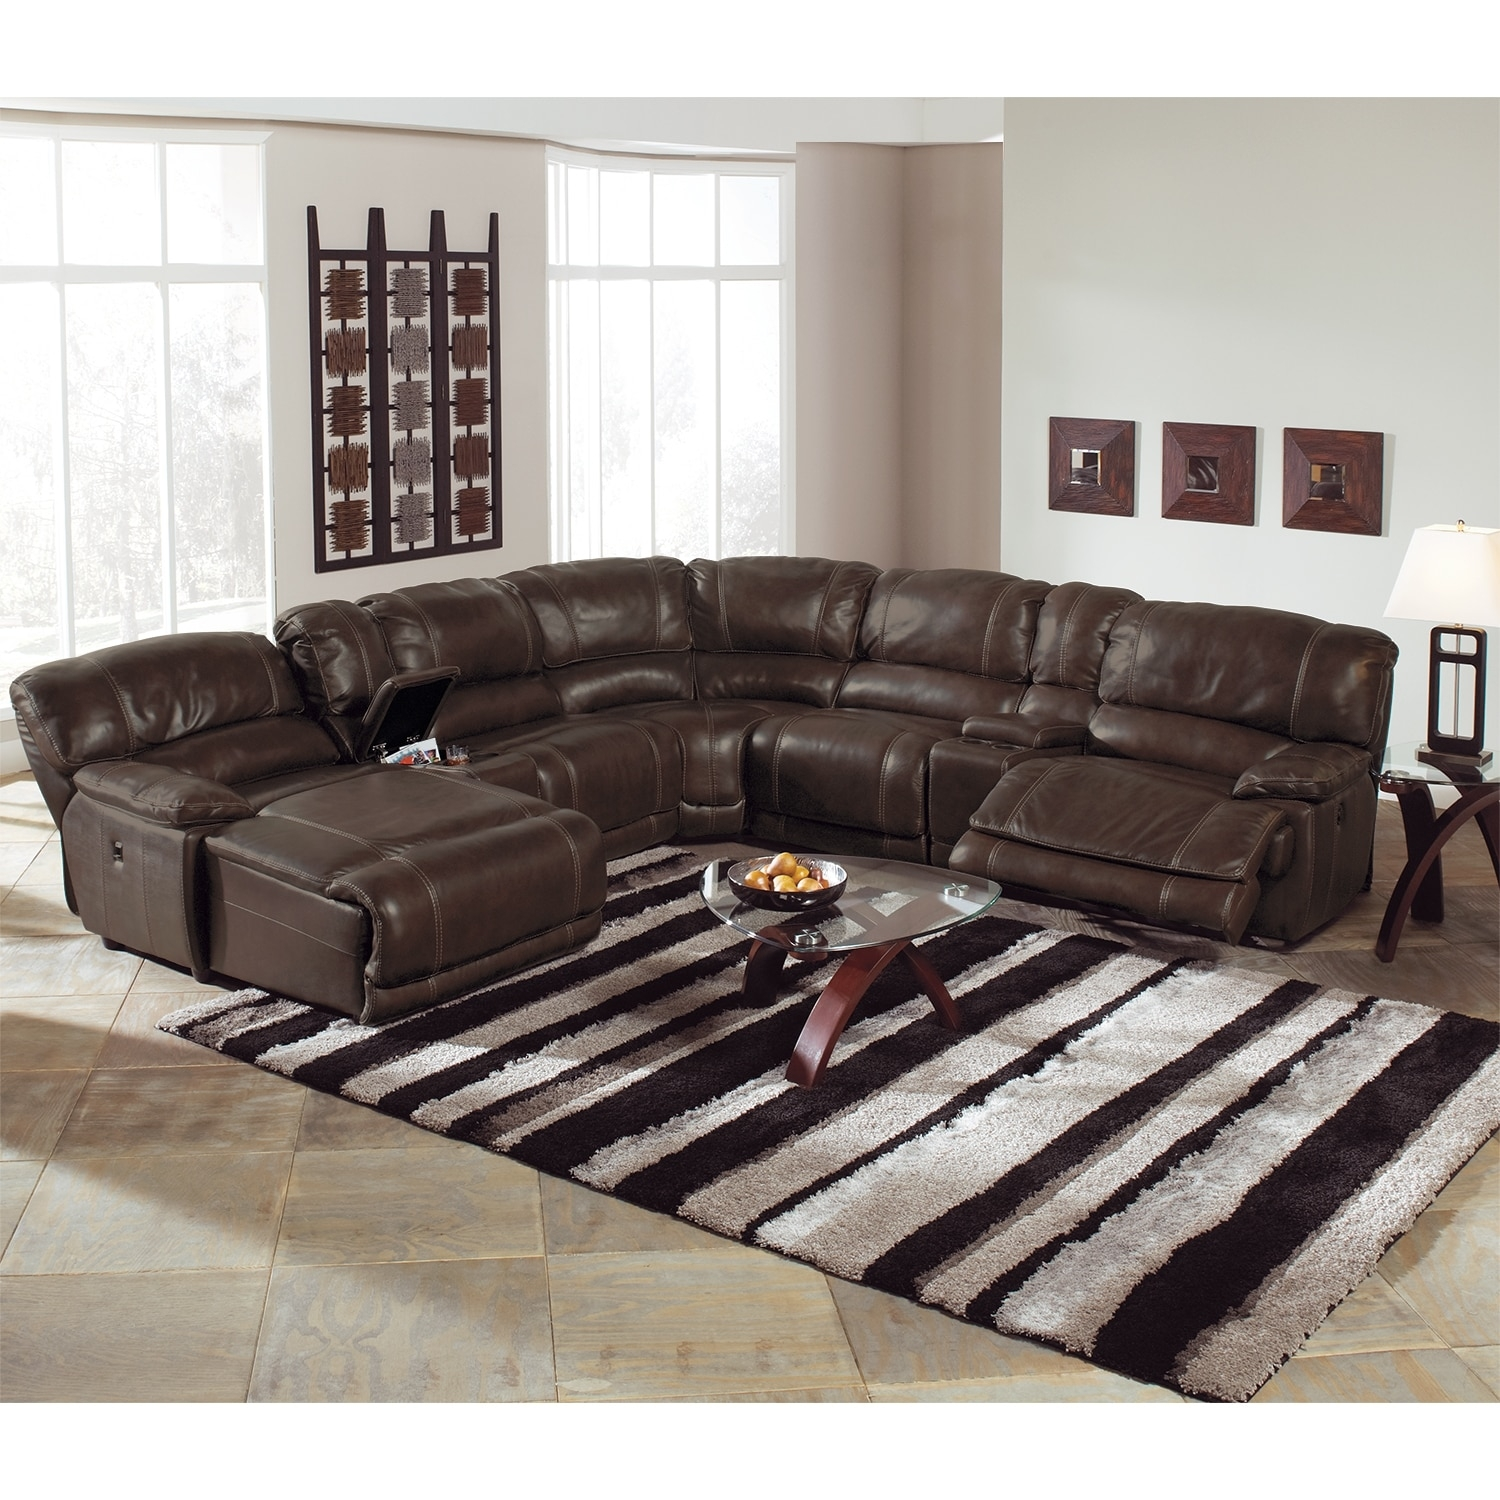 Caruso Leather 6 Piece Power Motion Sectional Sofa Best Sofa